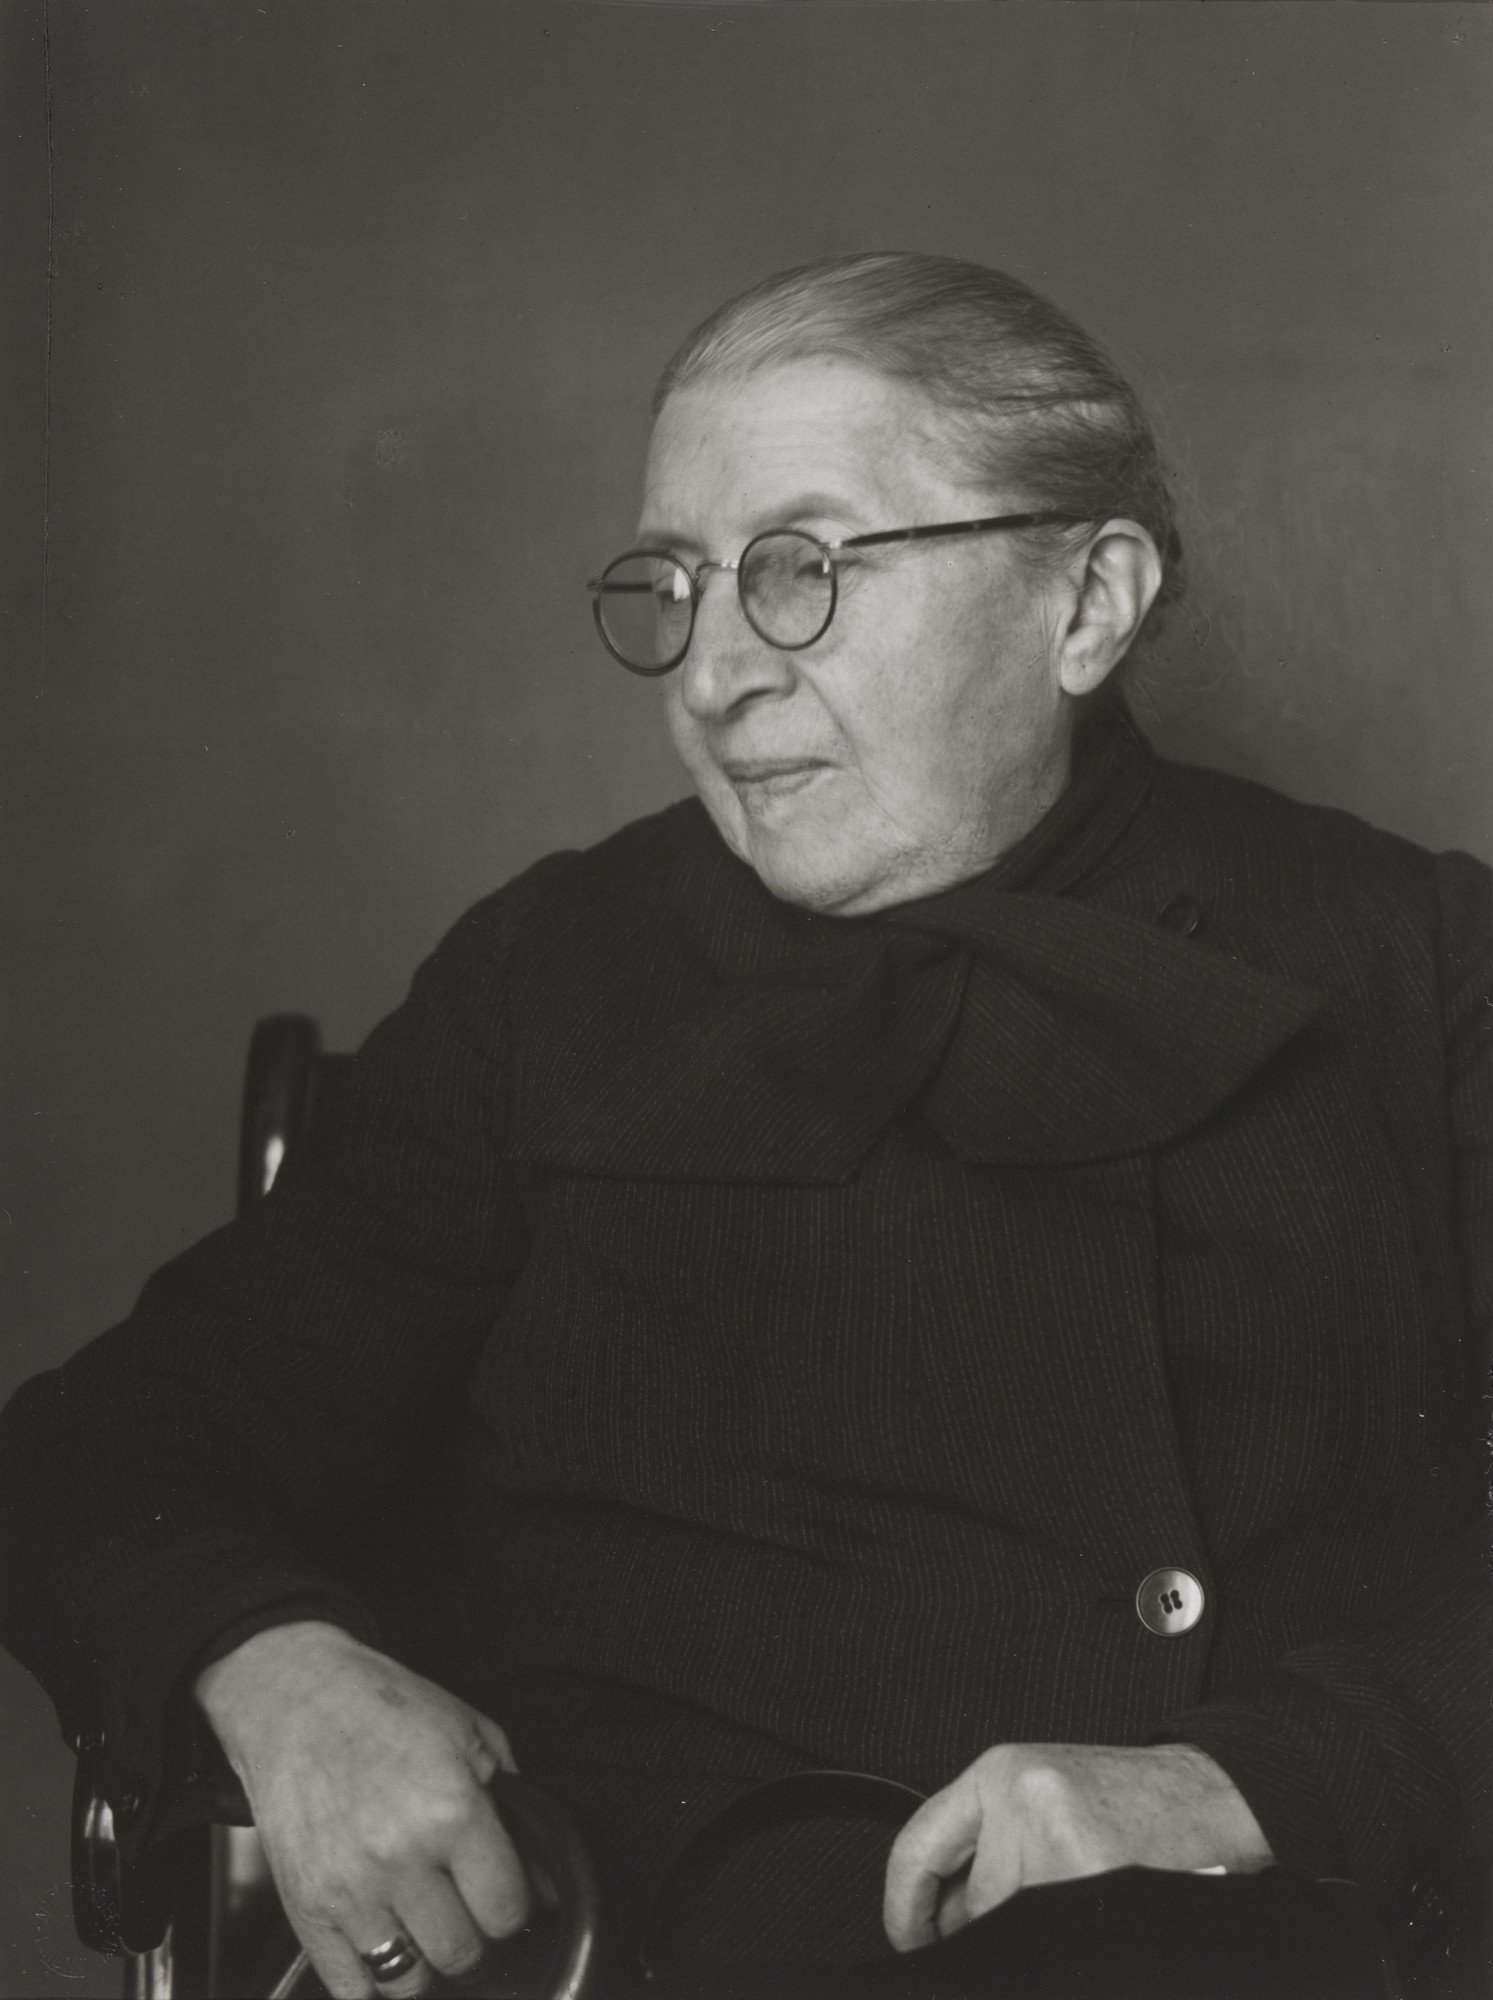 August Sander. Victim of Persecution. c. 1938